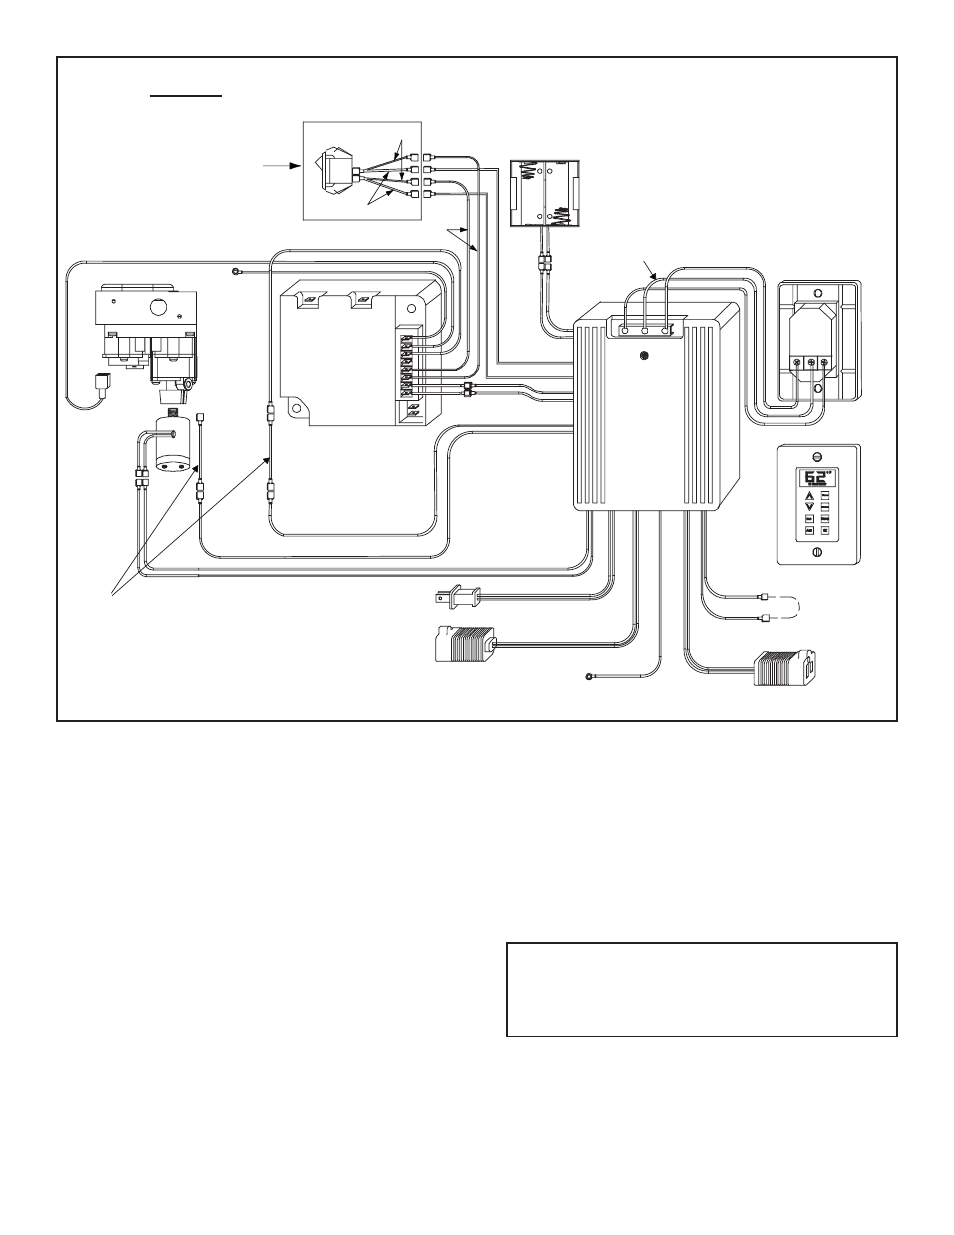 medium resolution of for units without factory installed rocker switch hearth and home technologies wsk mlt user manual page 4 7